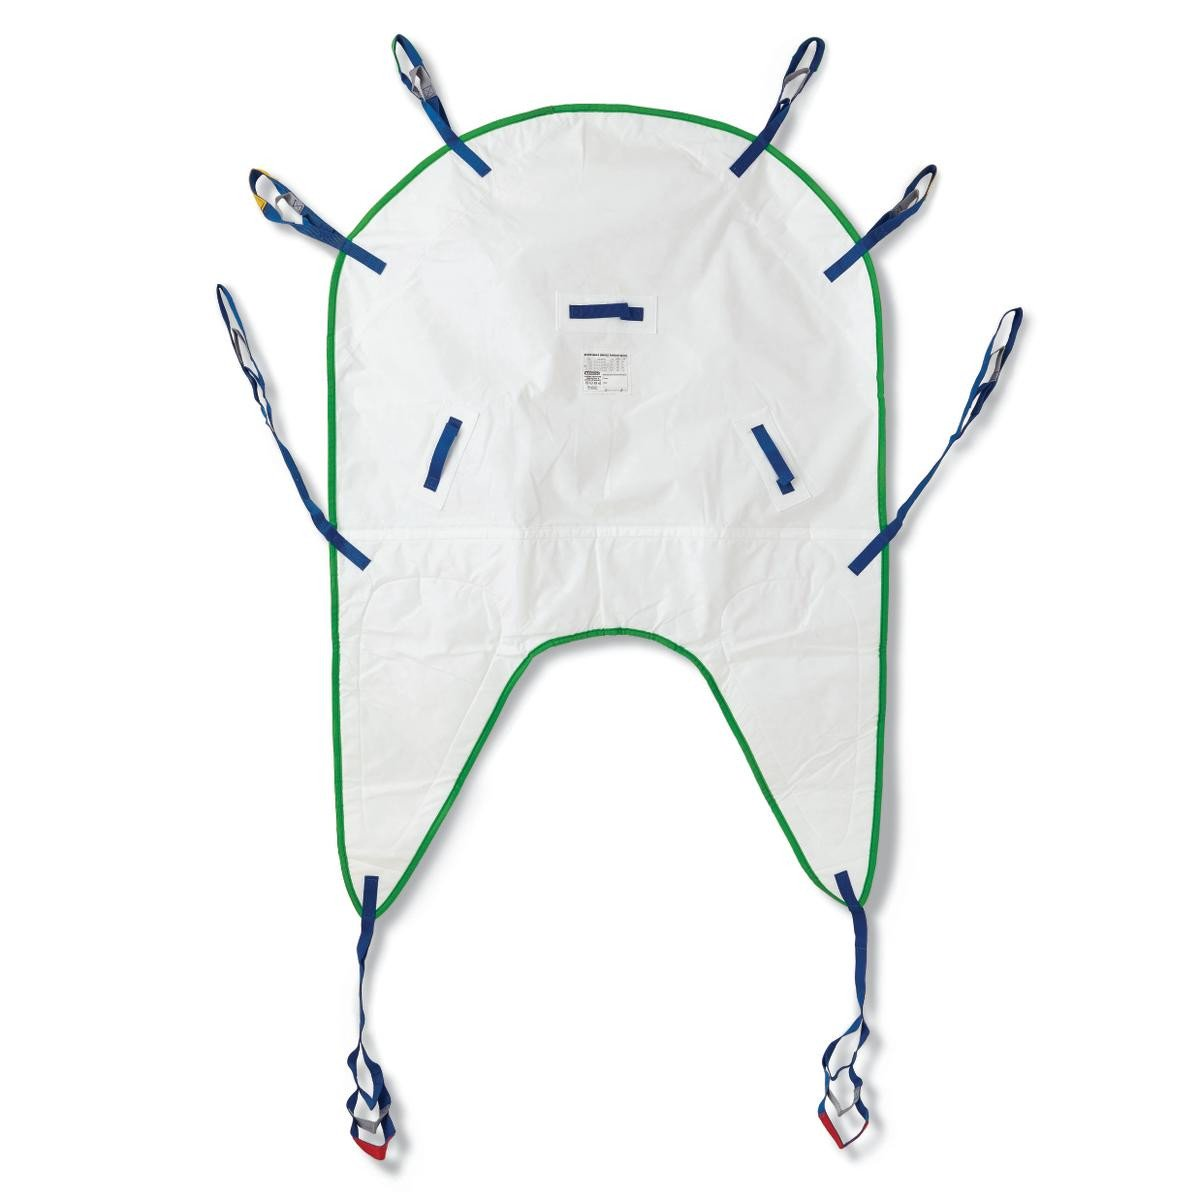 U-Shaped Disposable Sling with Head Support (10 Pack) - X-Large